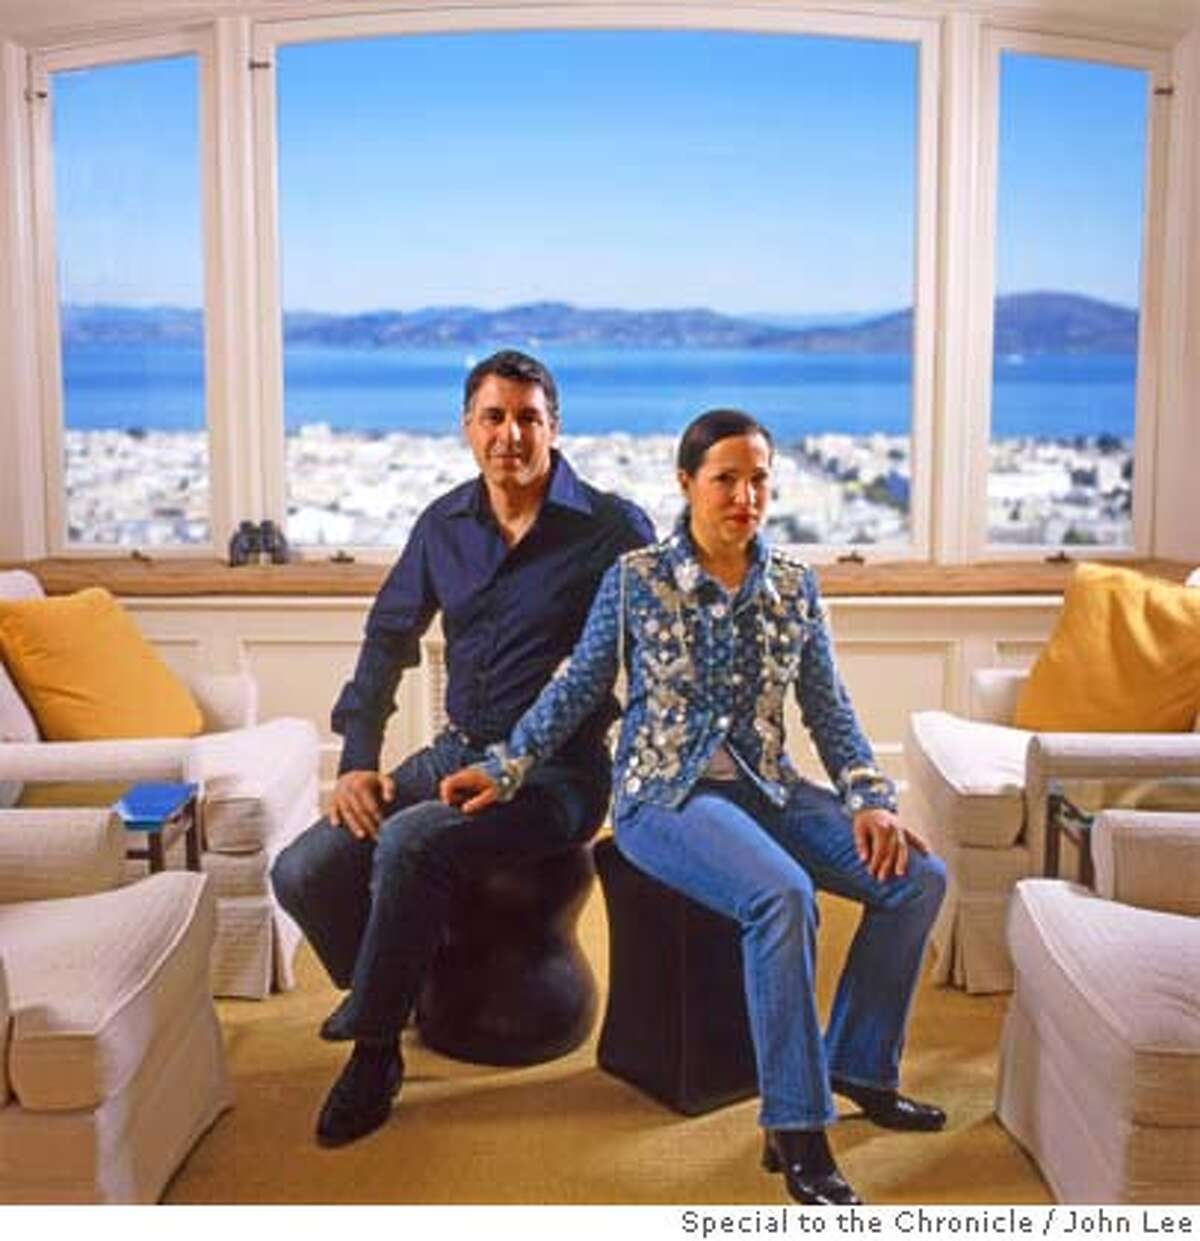 � 2500STEINER_KOUNALAKIS01JOHNLEE.JPG Markos Kounalakis (cq), left, and his wife Eleni Tsakopoulos-Kounalakis, sitting in the living room at 2500 Steiner in San Francisco's Pacific Heights. Behind them are windows looking north out onto the San Francisco Bay. For Sam Whiting story on 2500 Steiner. By JOHN LEE/SPECIAL TO THE CHRONICLE